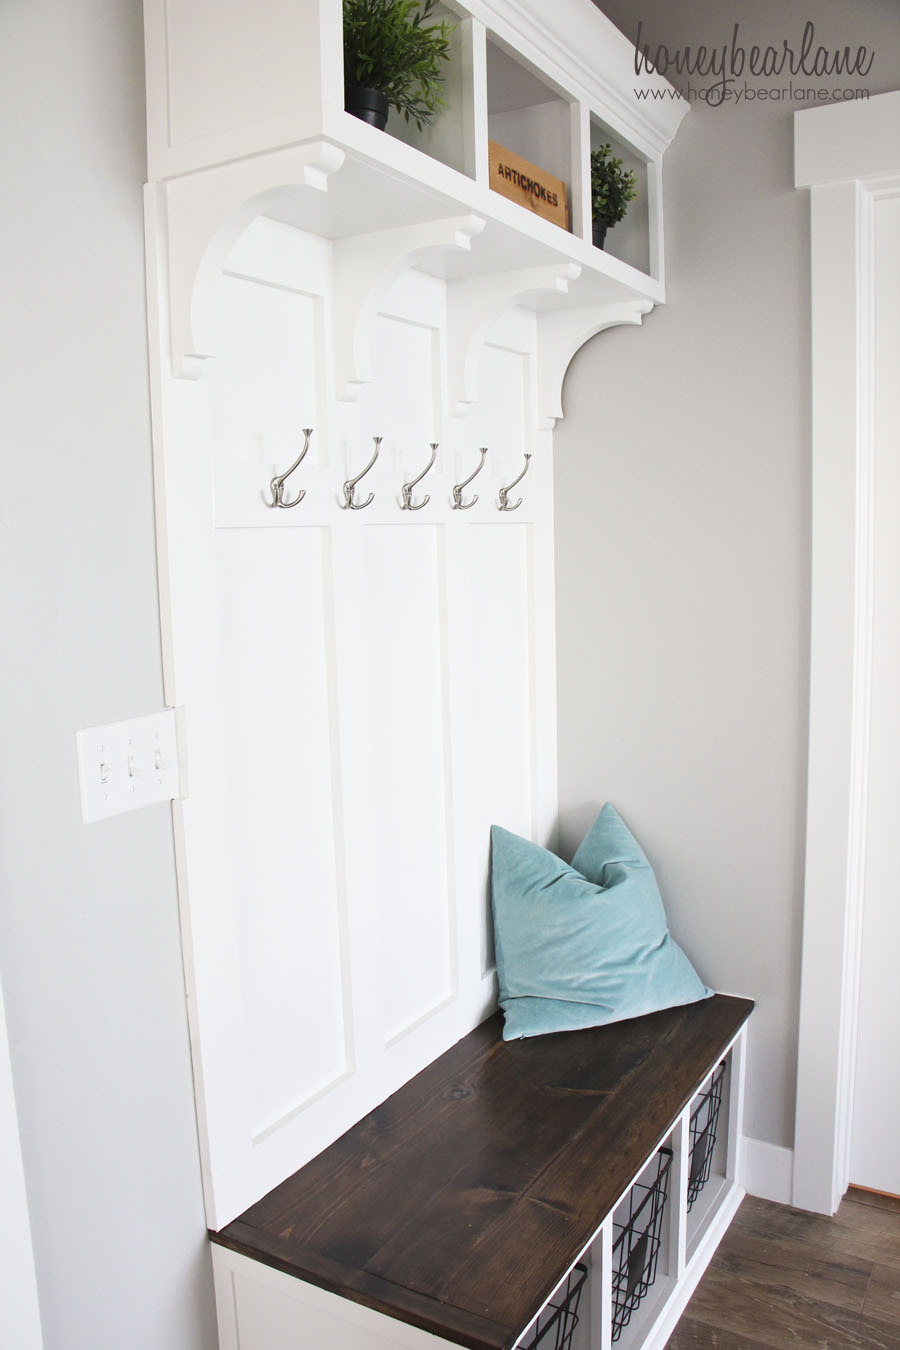 Diy Mudroom Bench Part 2 Honeybear Lane